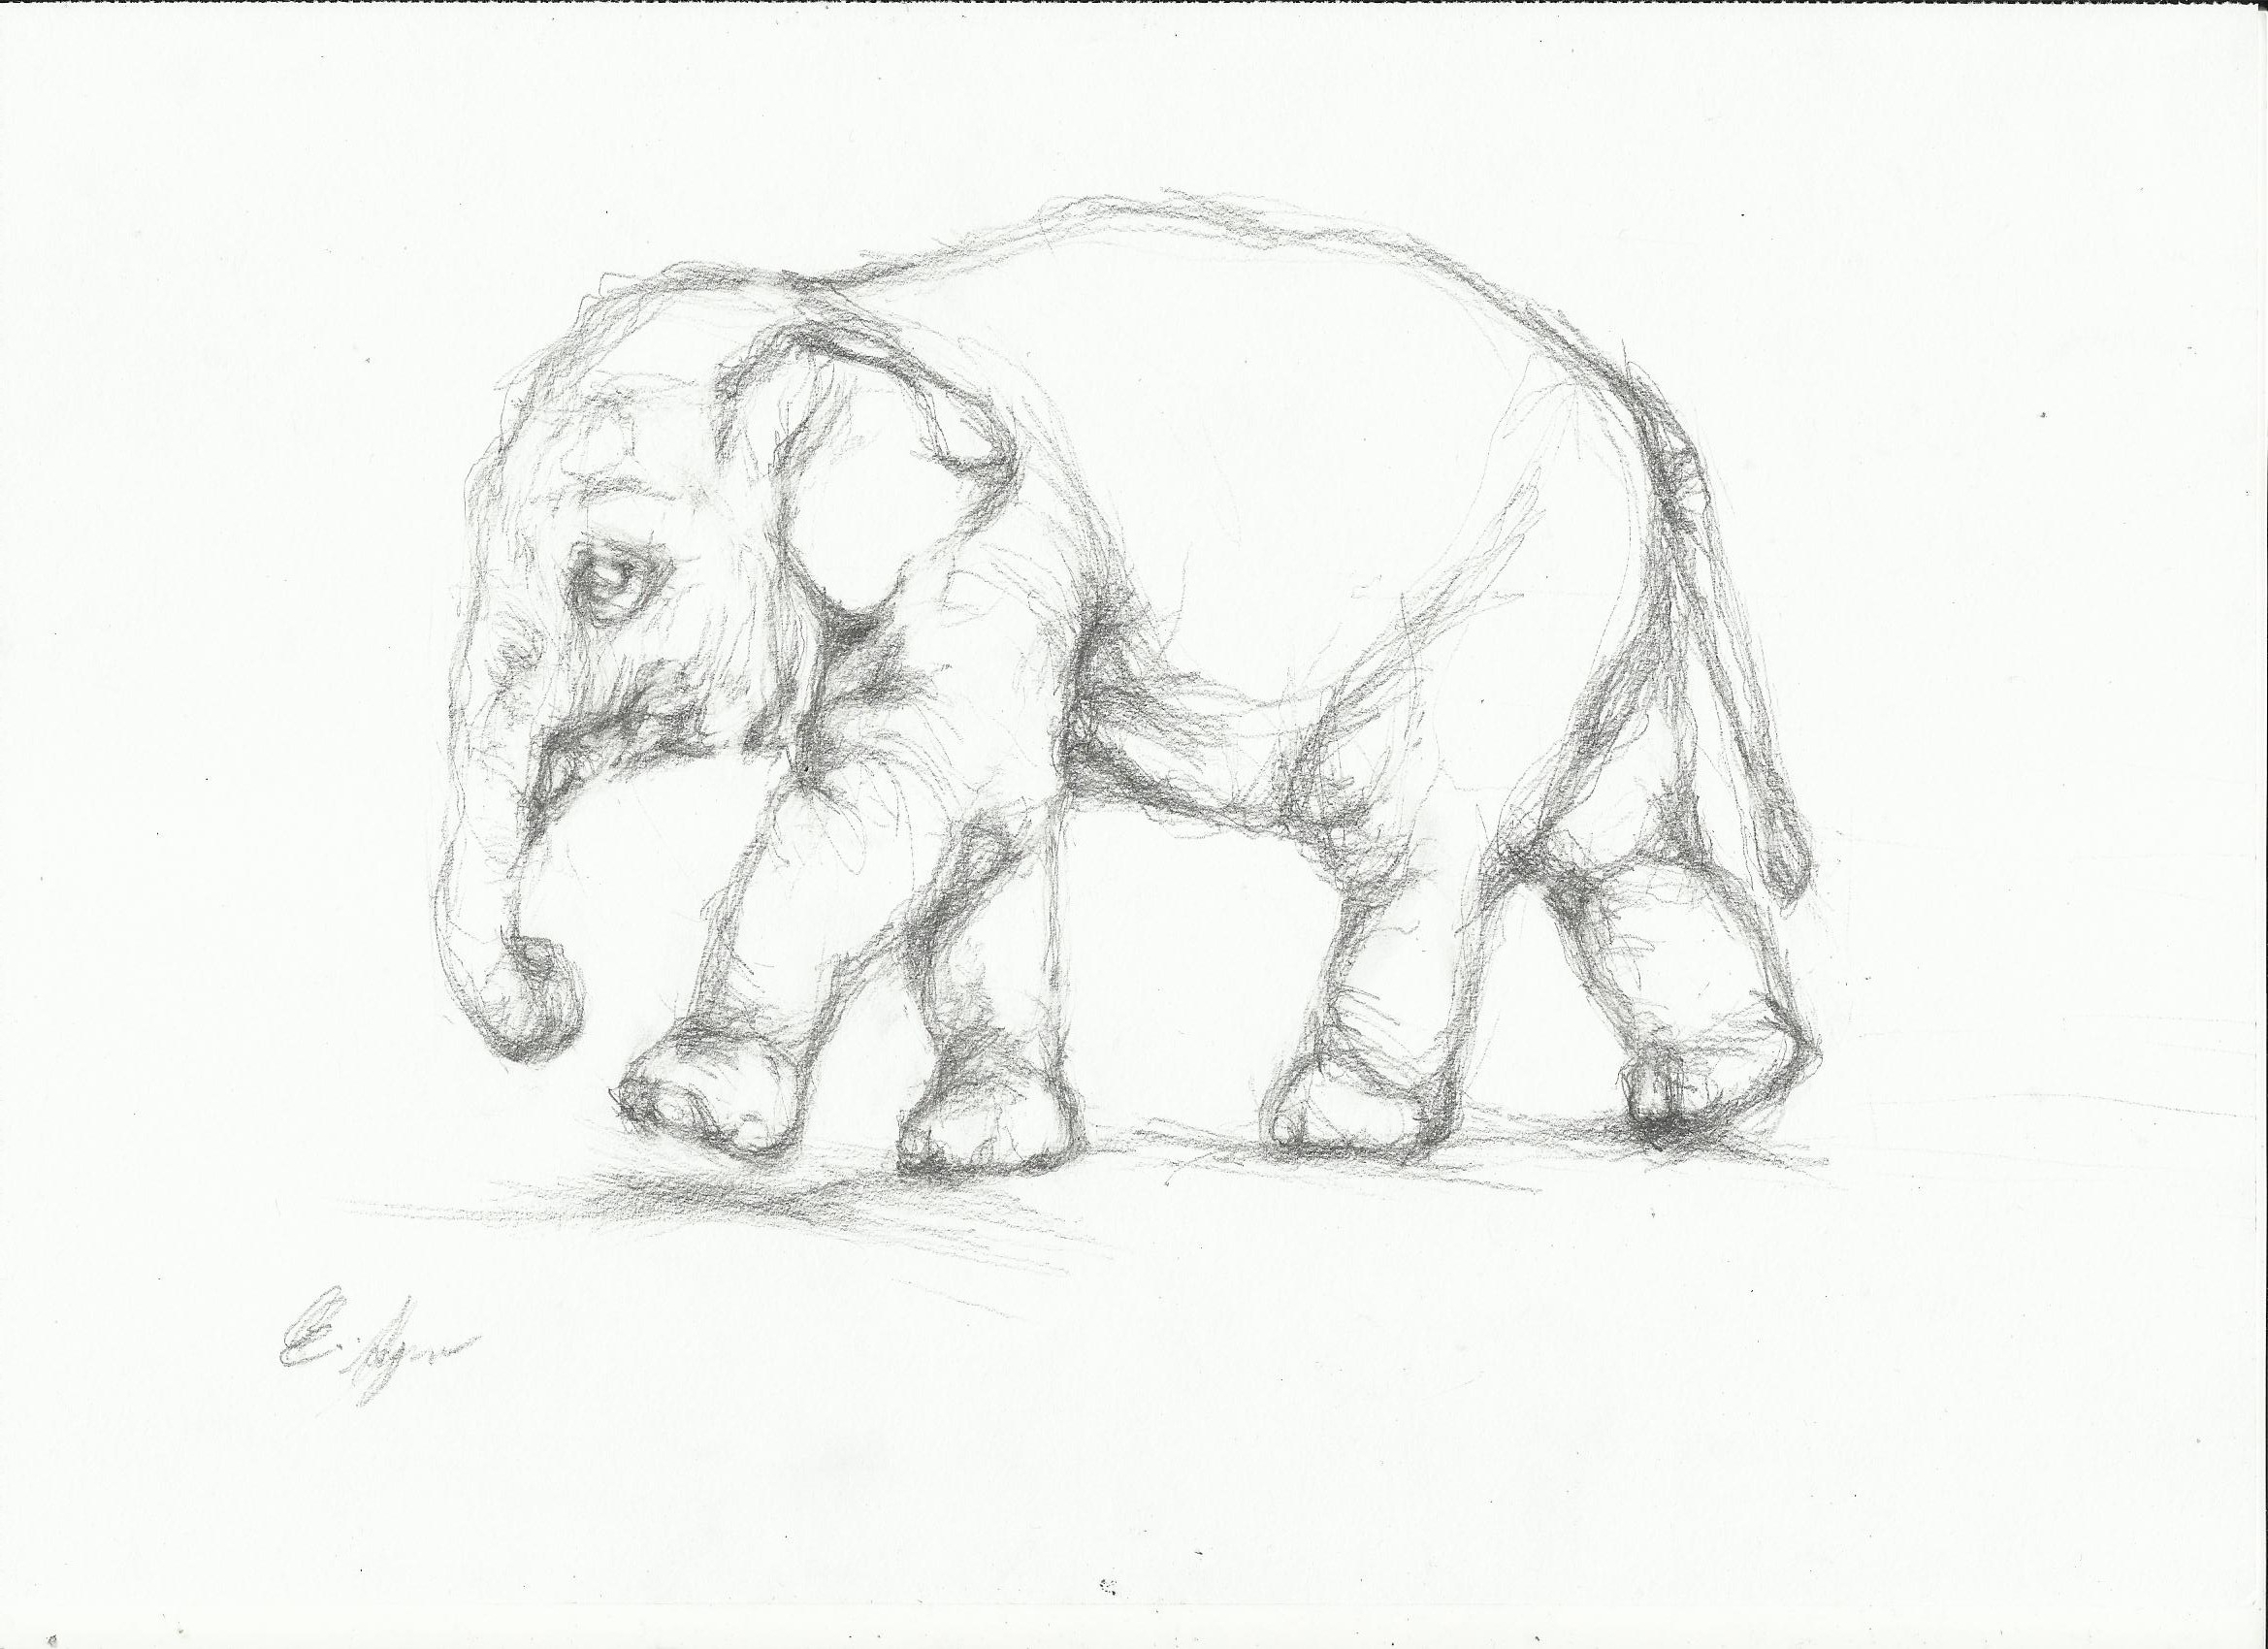 2338x1700 Pencil Sketches Of Elephants Elephant Sketch Tag Archives